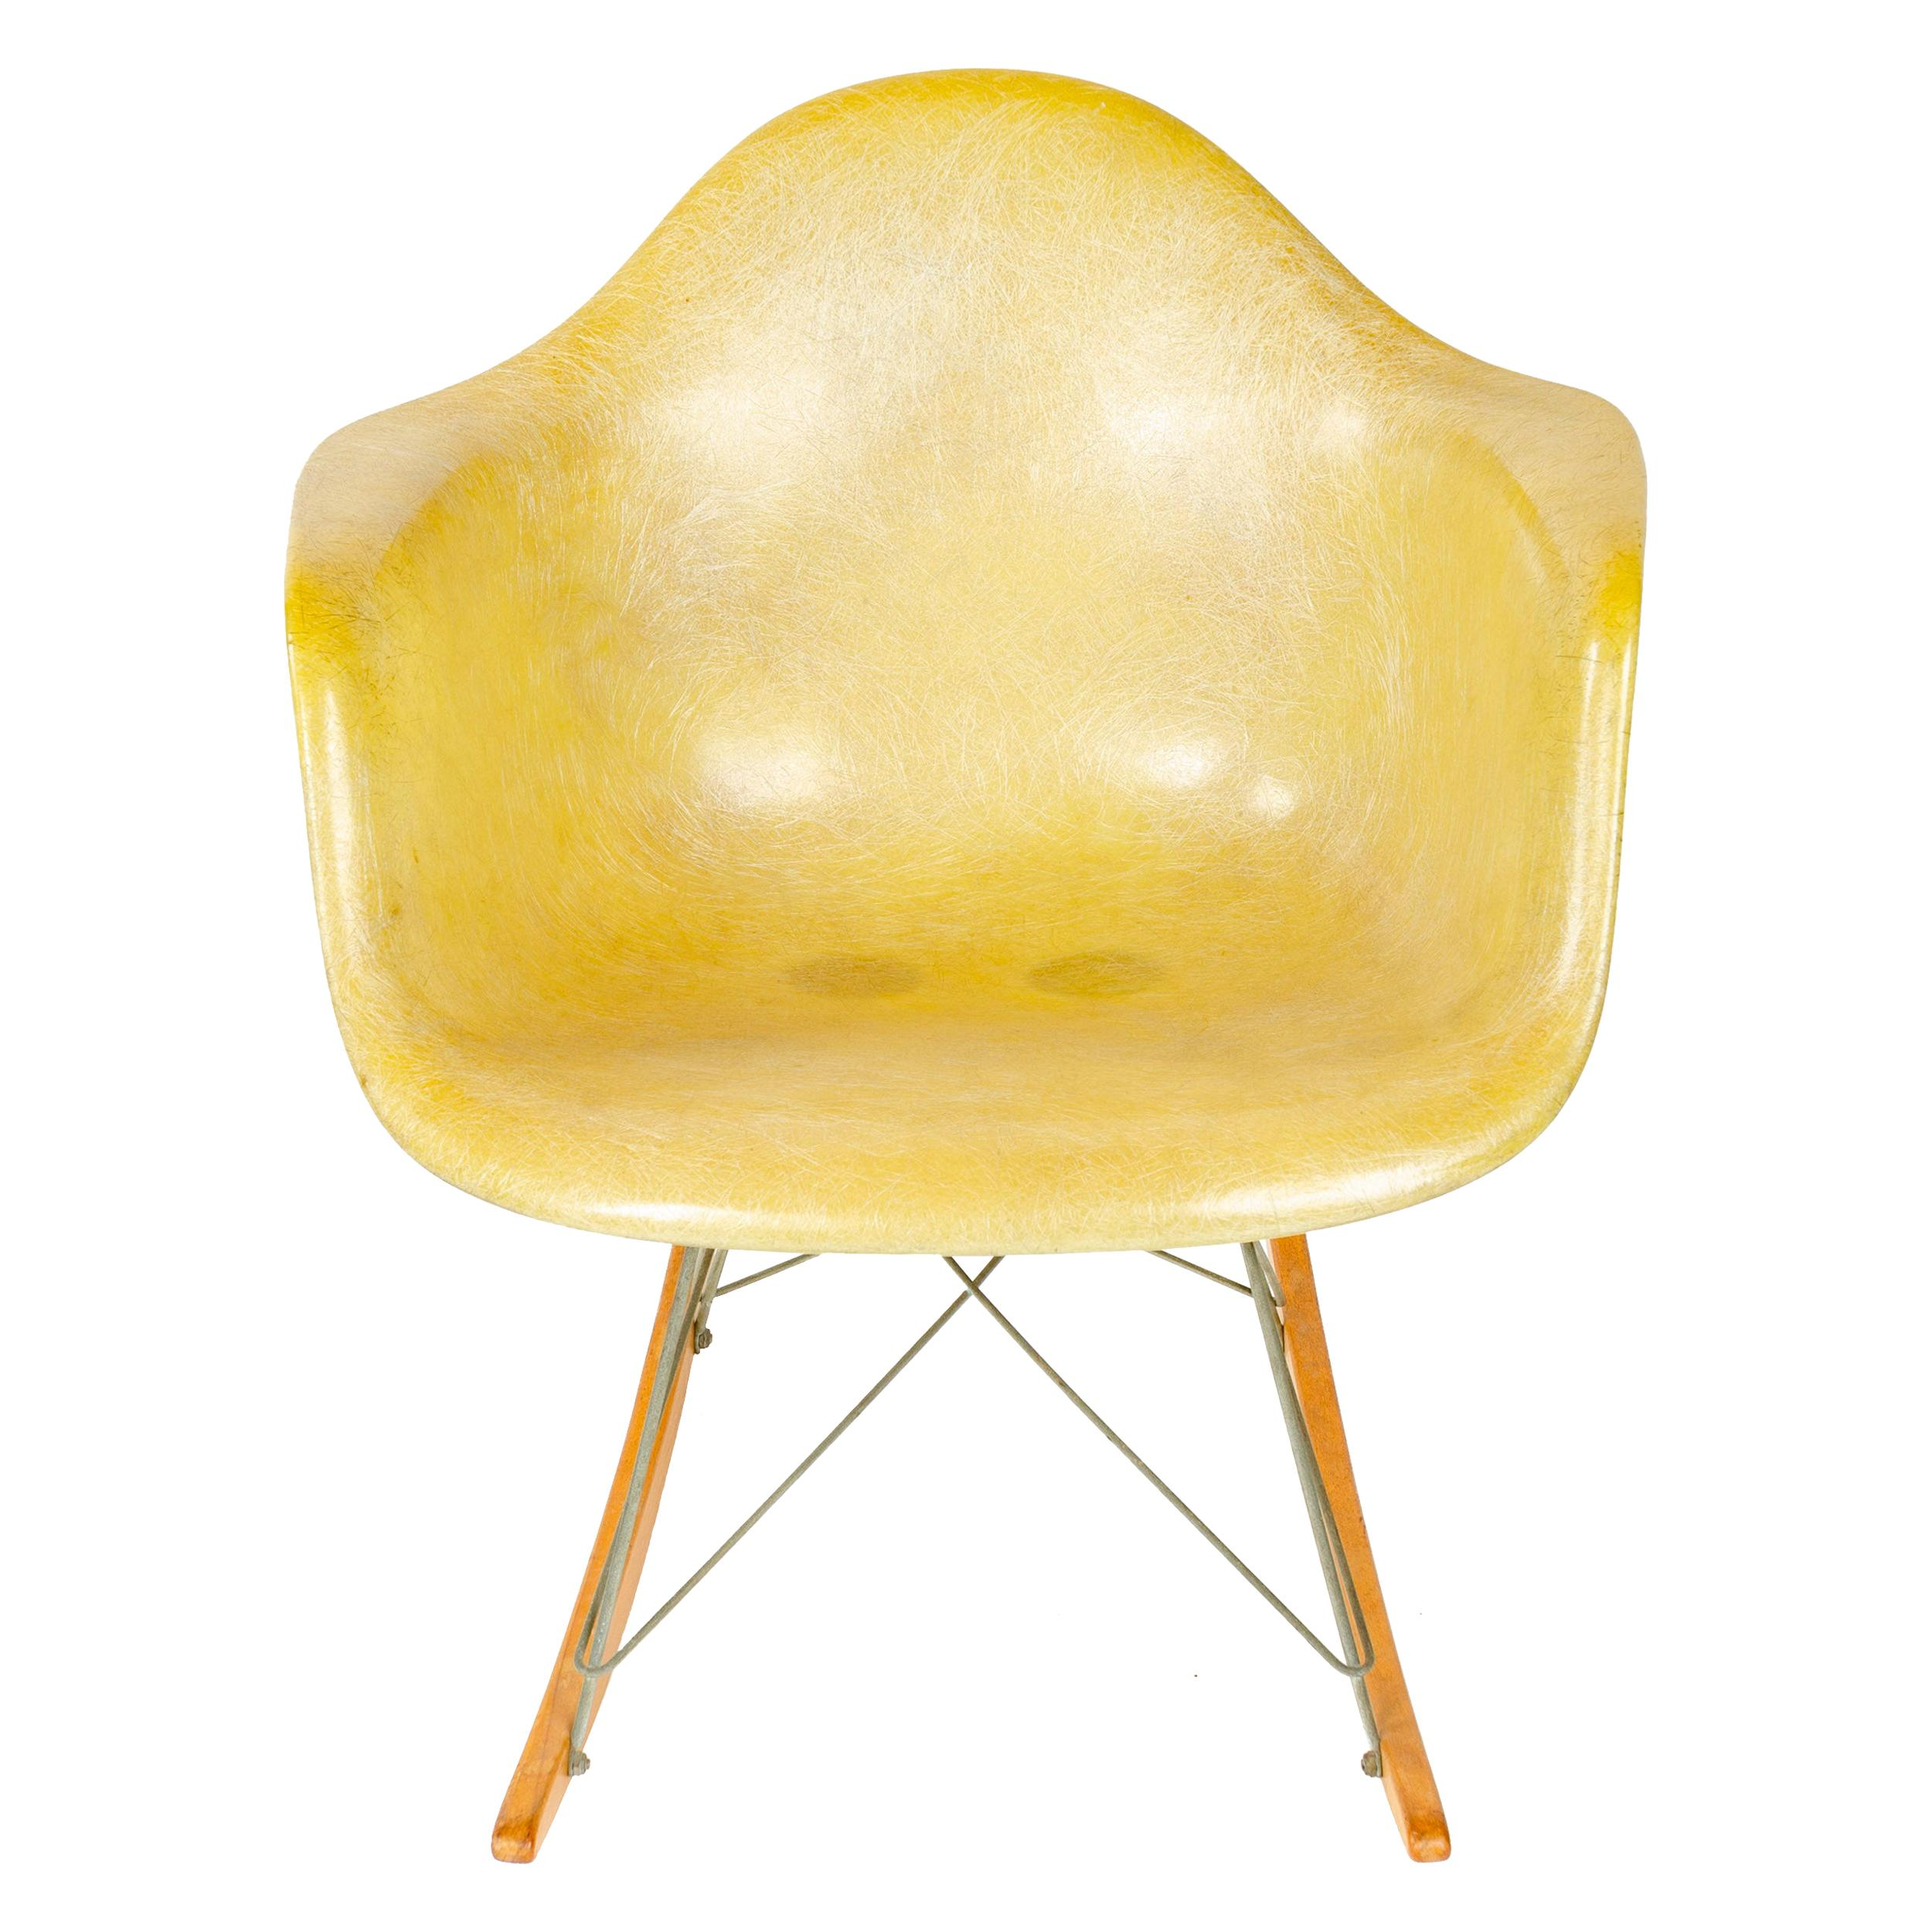 1960s RAR Rocking Chair by Charles & Ray Eames for Herman Miller